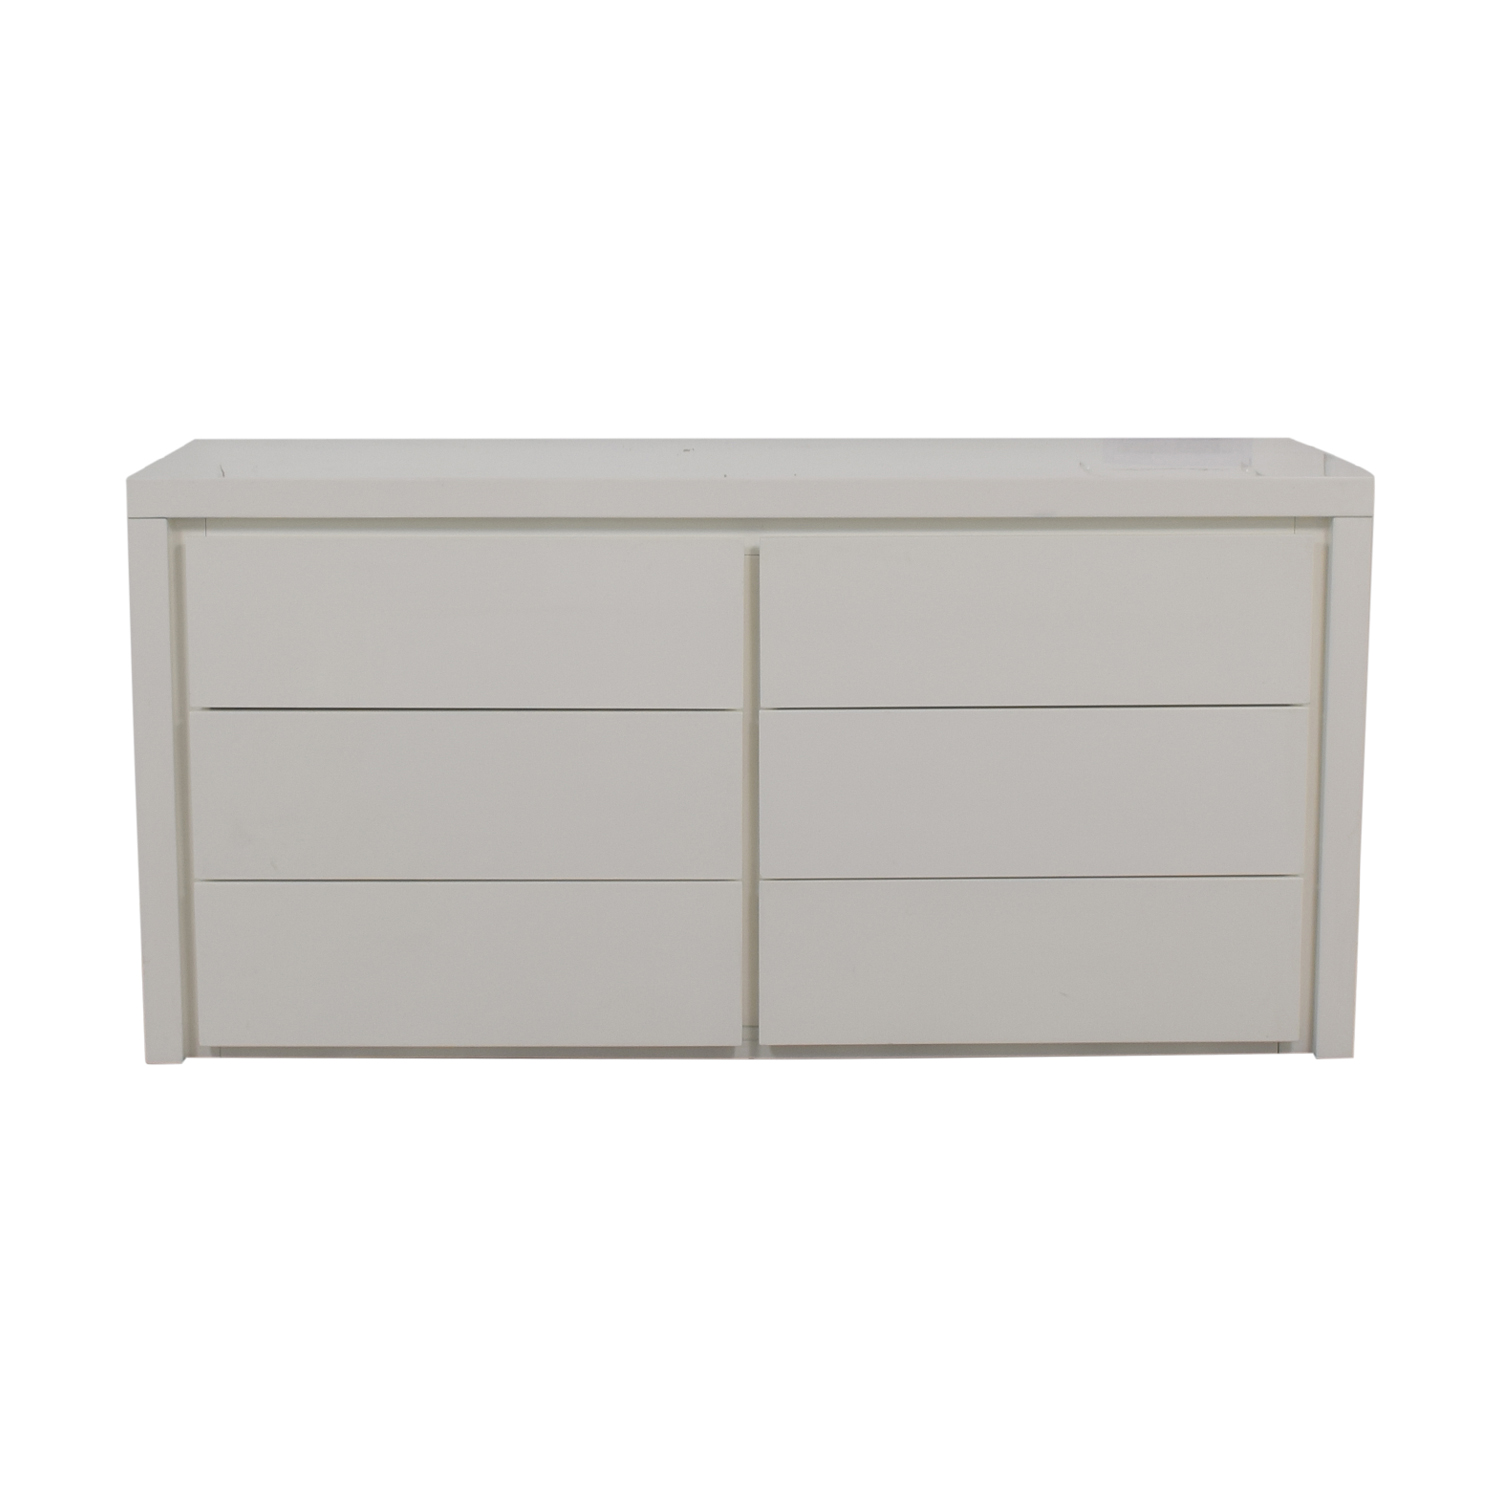 Modani Modani Dino White Six-Drawer Dresser second hand